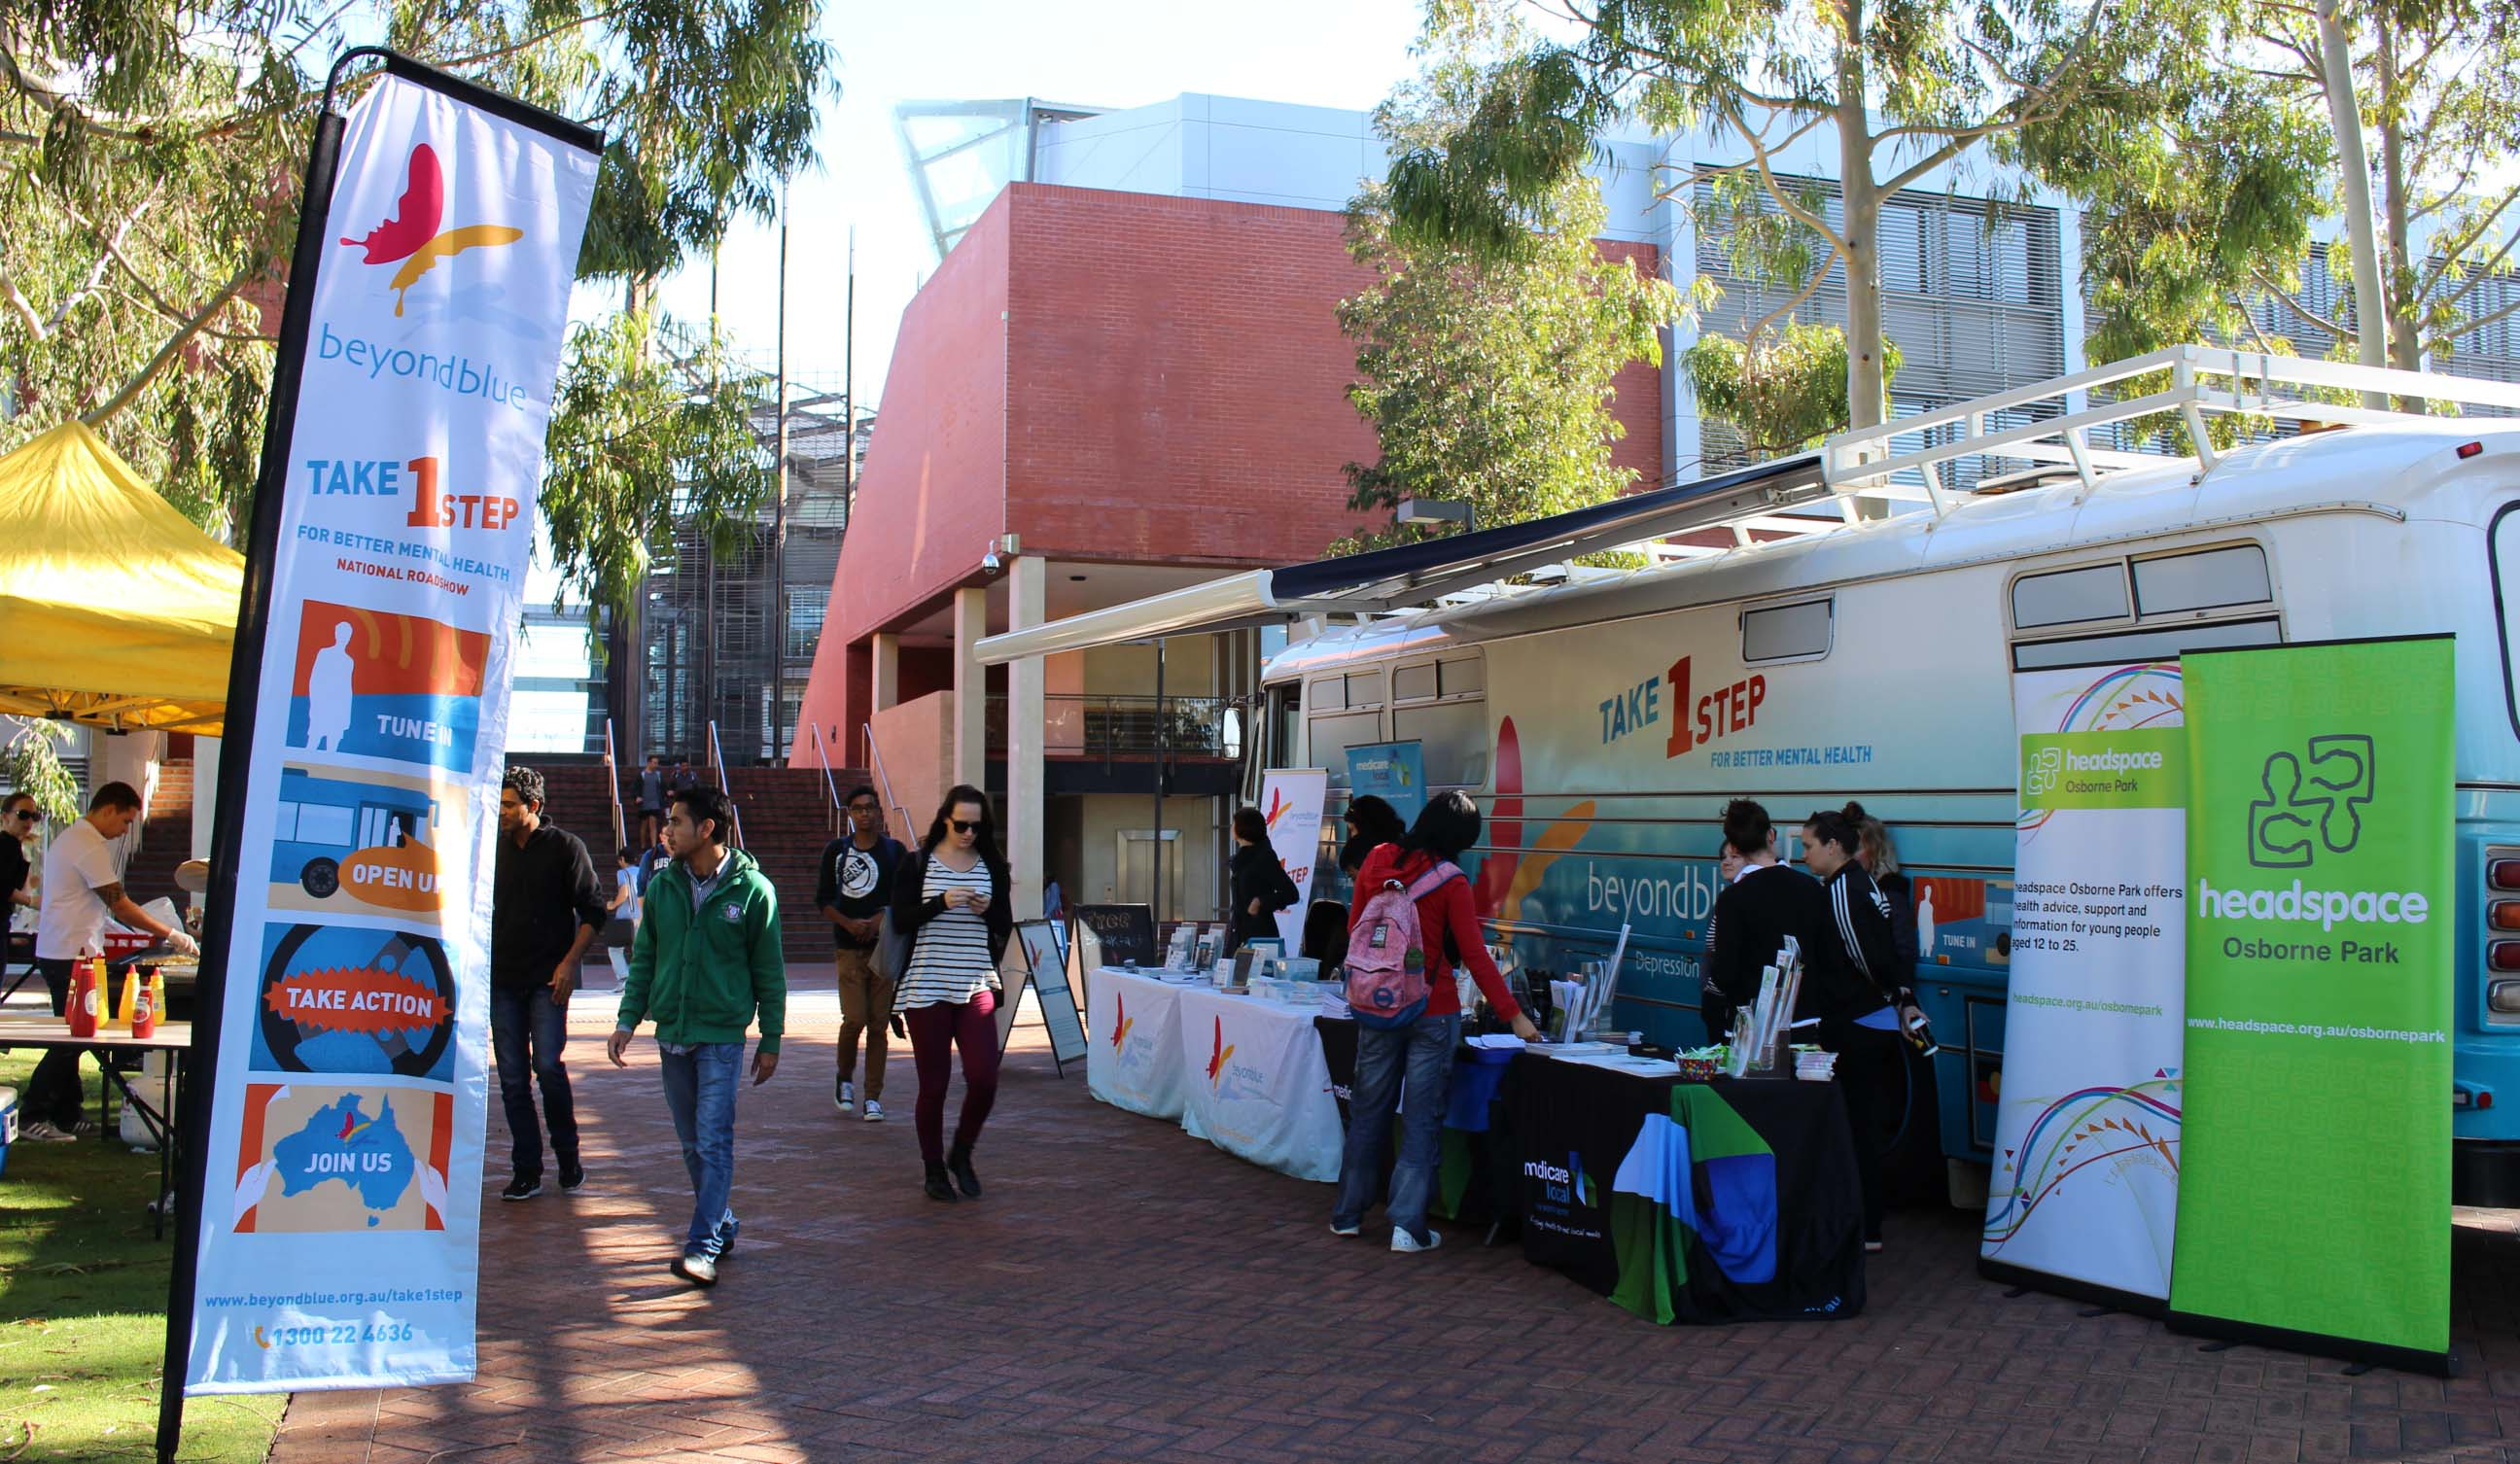 Students at Edith Cowan Uni picked up free information ahead of the exam period.